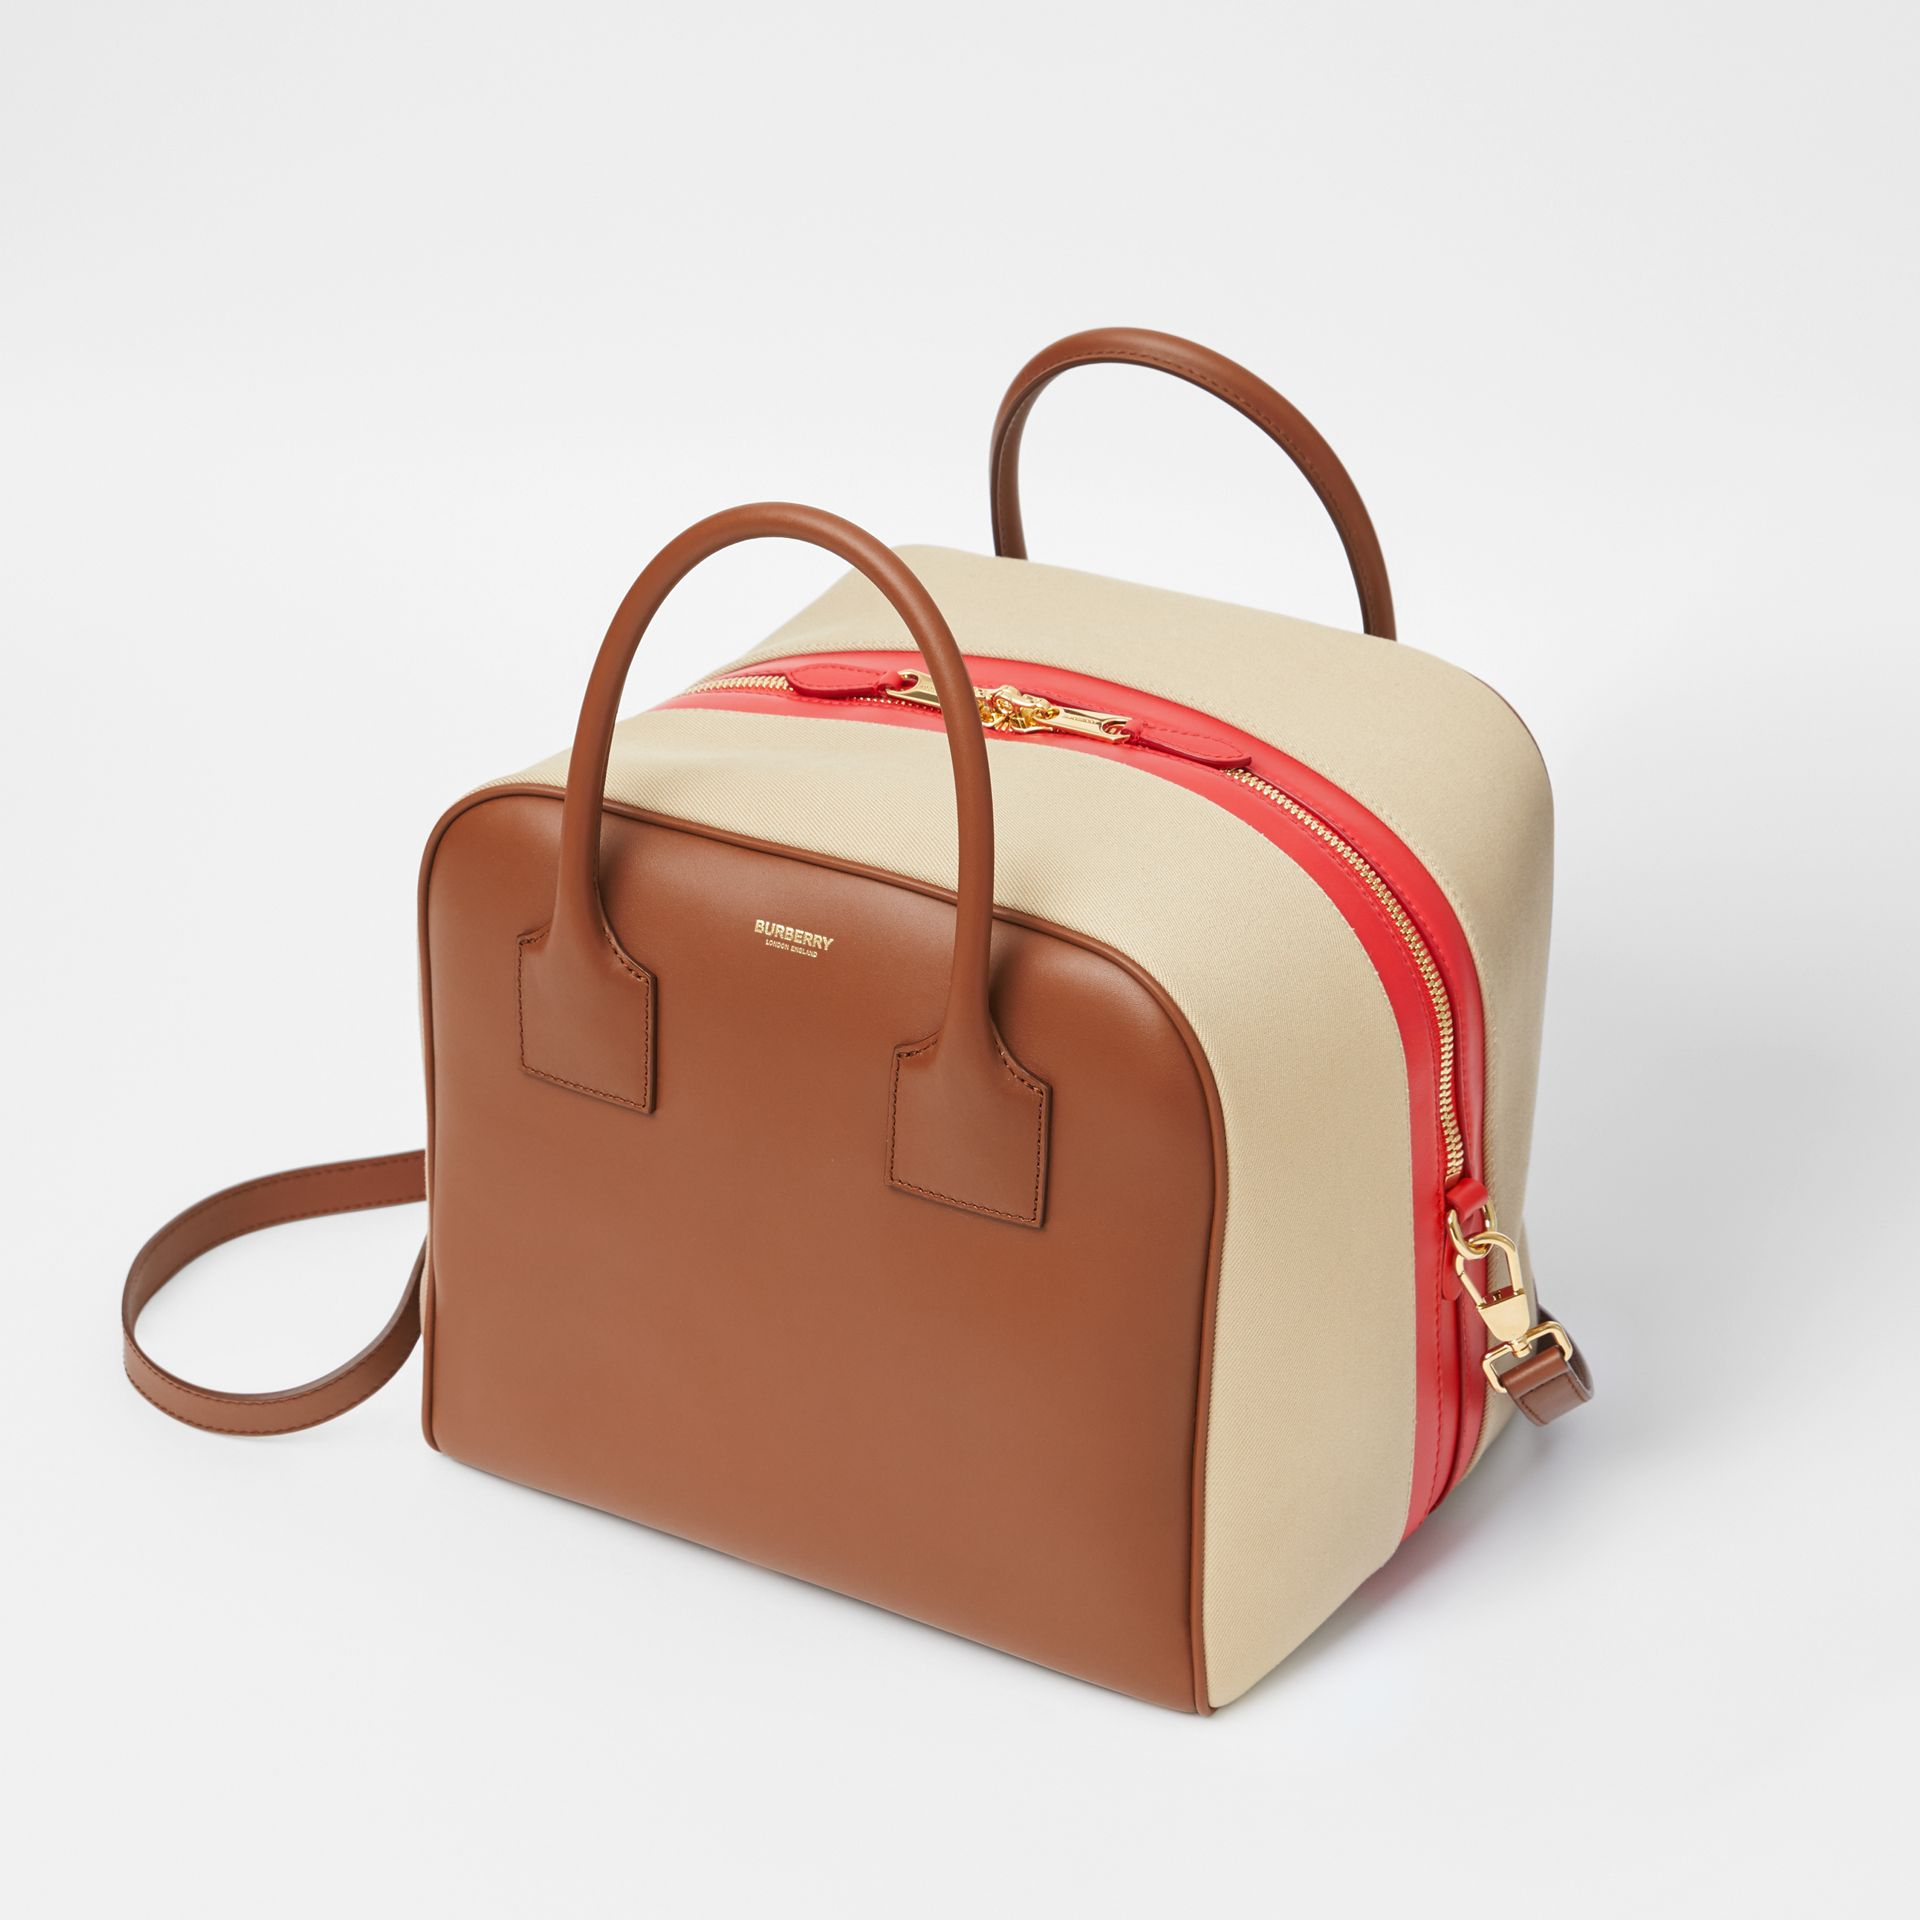 Medium Leather and Cotton Canvas Cube Bag in Malt Brown - Women | Burberry - gallery image 3